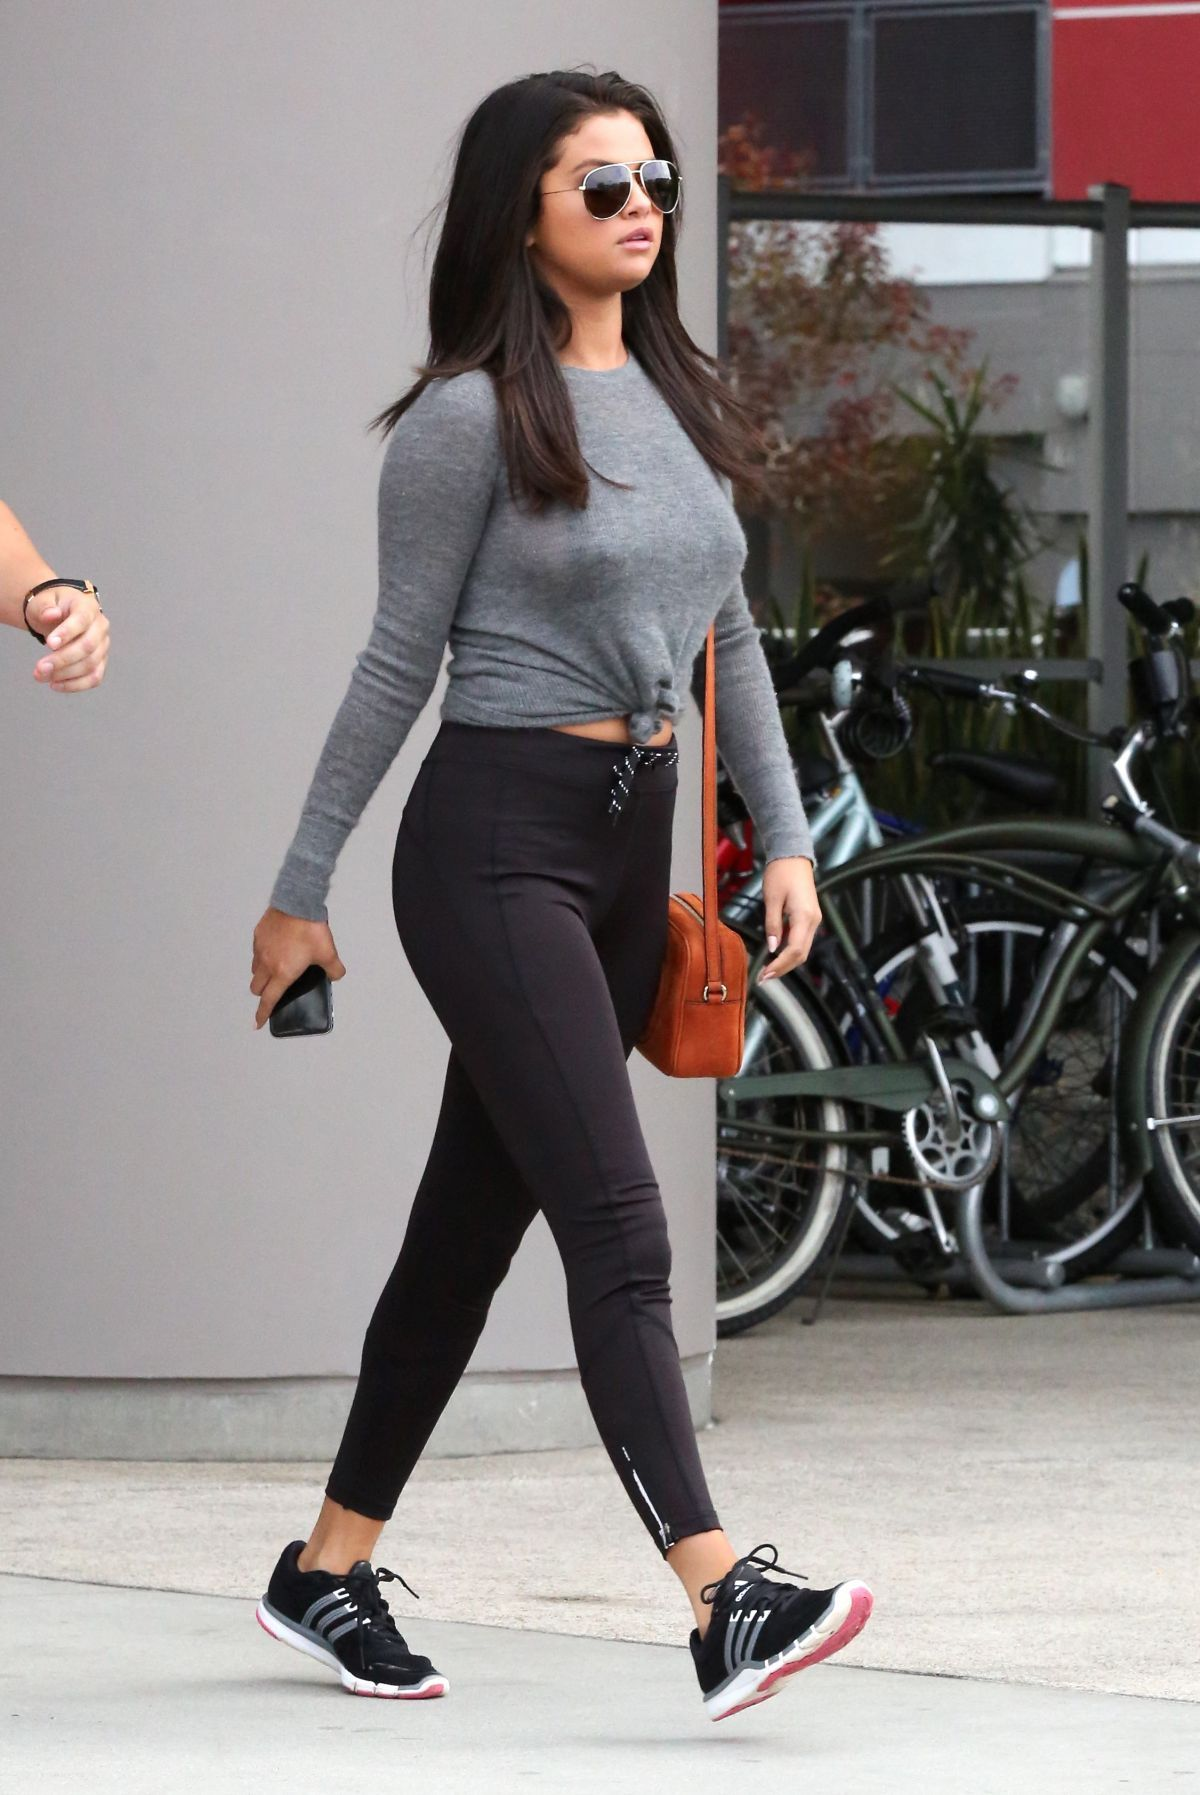 Gomez selena casual outfits tumblr advise dress for everyday in 2019